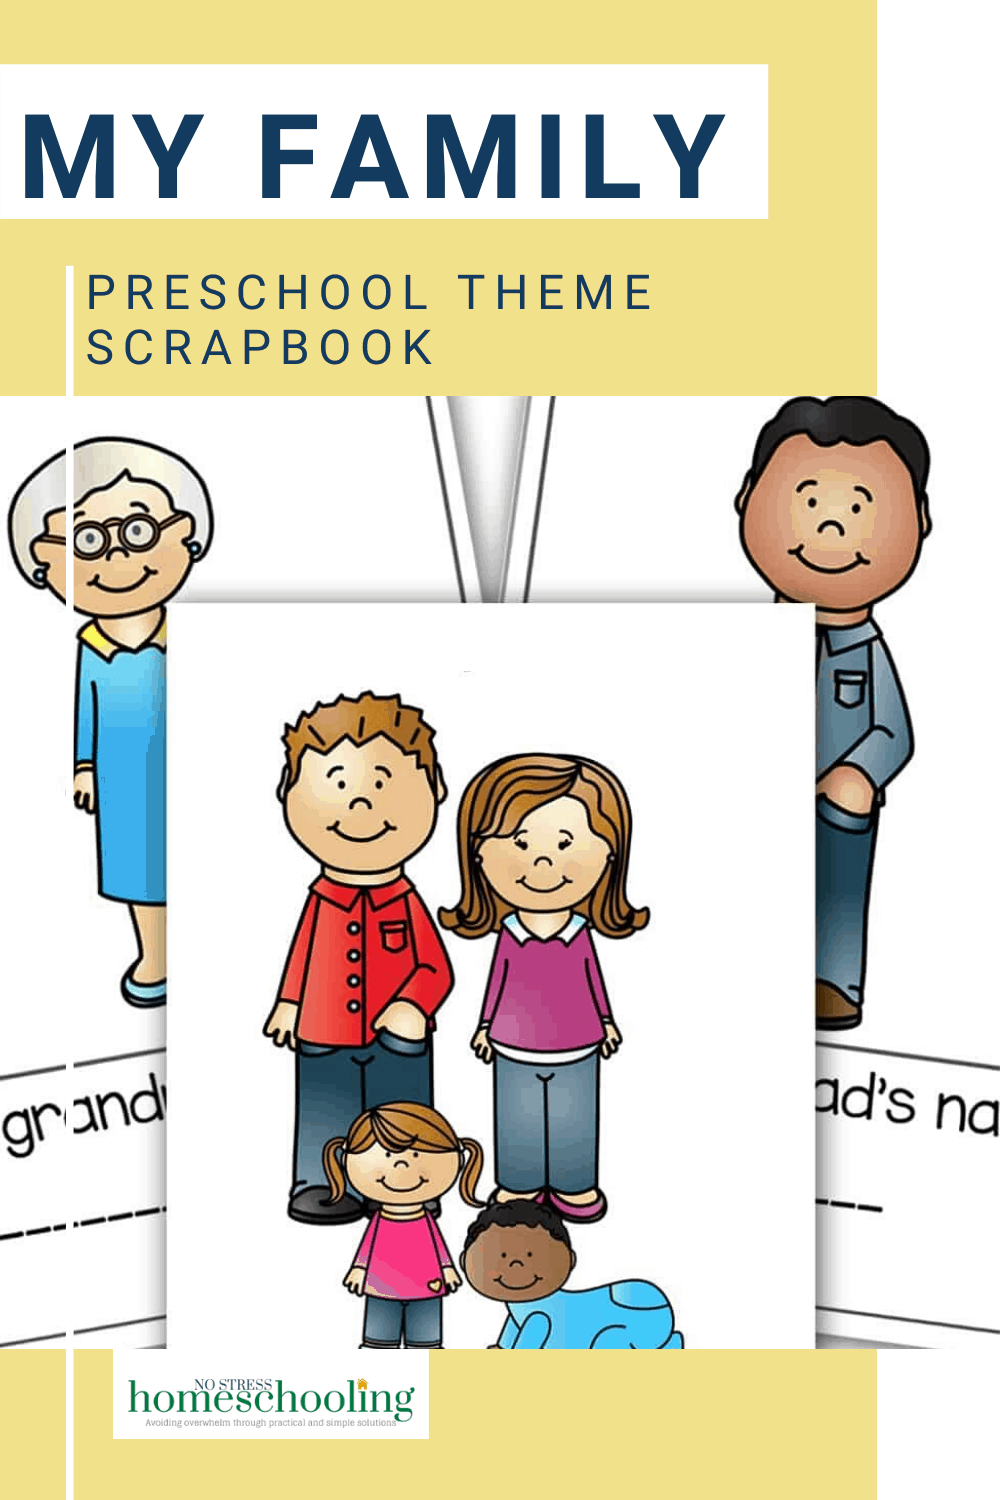 pic showing my family preschool theme scrapbook